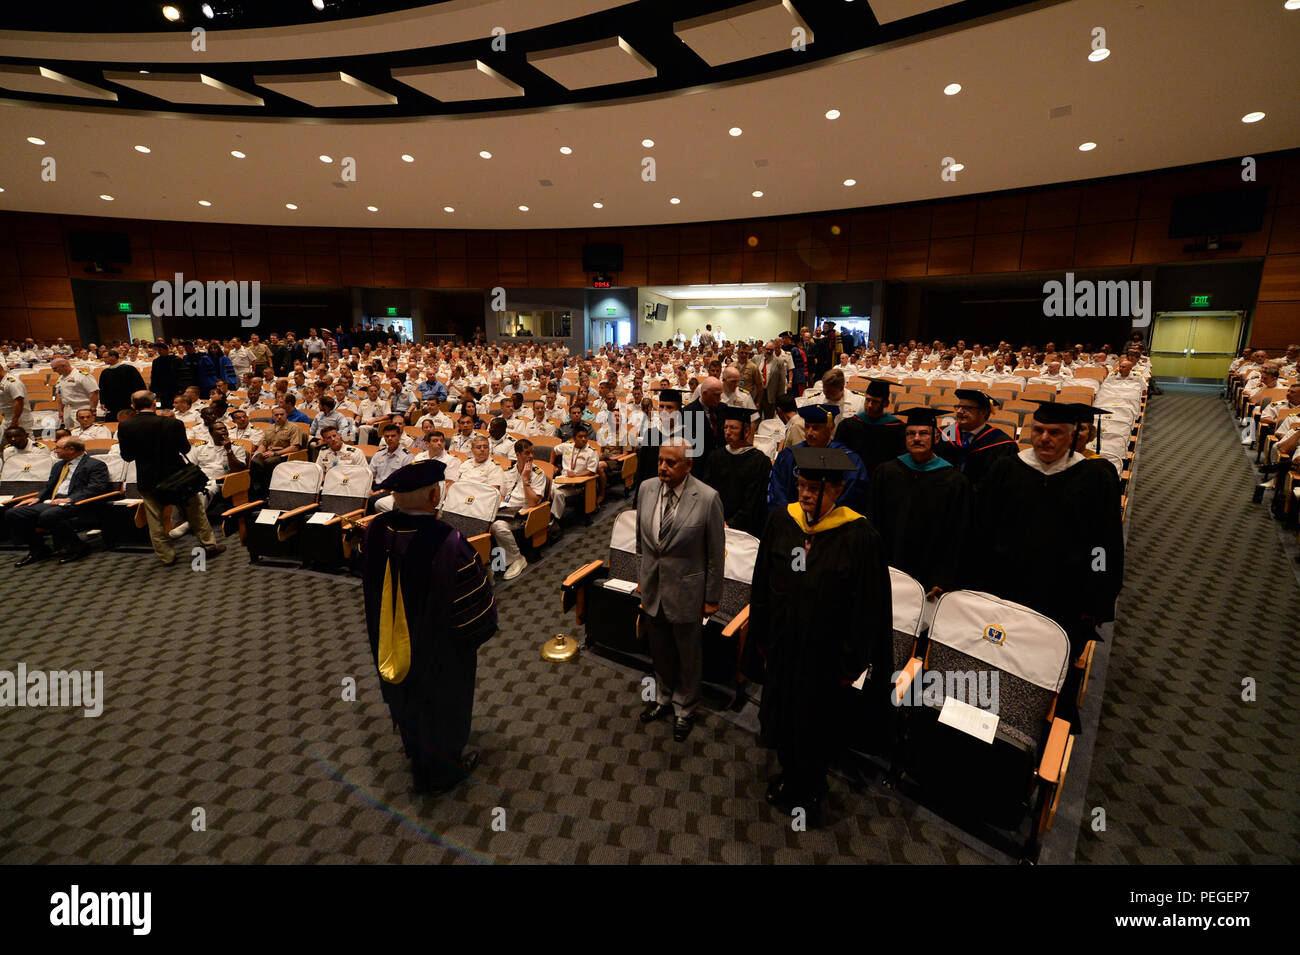 Charles Chadbourn, professor for U.S. Naval War College (NWC), leads an academic procession during a convocation ceremony kicking-off the 2015-2016 school year at NWC in Newport, Rhode Island. During the ceremony, Rear Adm. P. Gardner Howe III, president, NWC, presented Adm. Michael S. Rogers, commander, U.S. Cyber Command, director, National Security Agency, chief, Central Security Service, the 2015 Distinguished Graduate Leadership Award. The award honors NWC graduates who have earned positions of prominence in the national defense field. (U.S. Navy photo by Chief Mass Communication Speciali - Stock Image